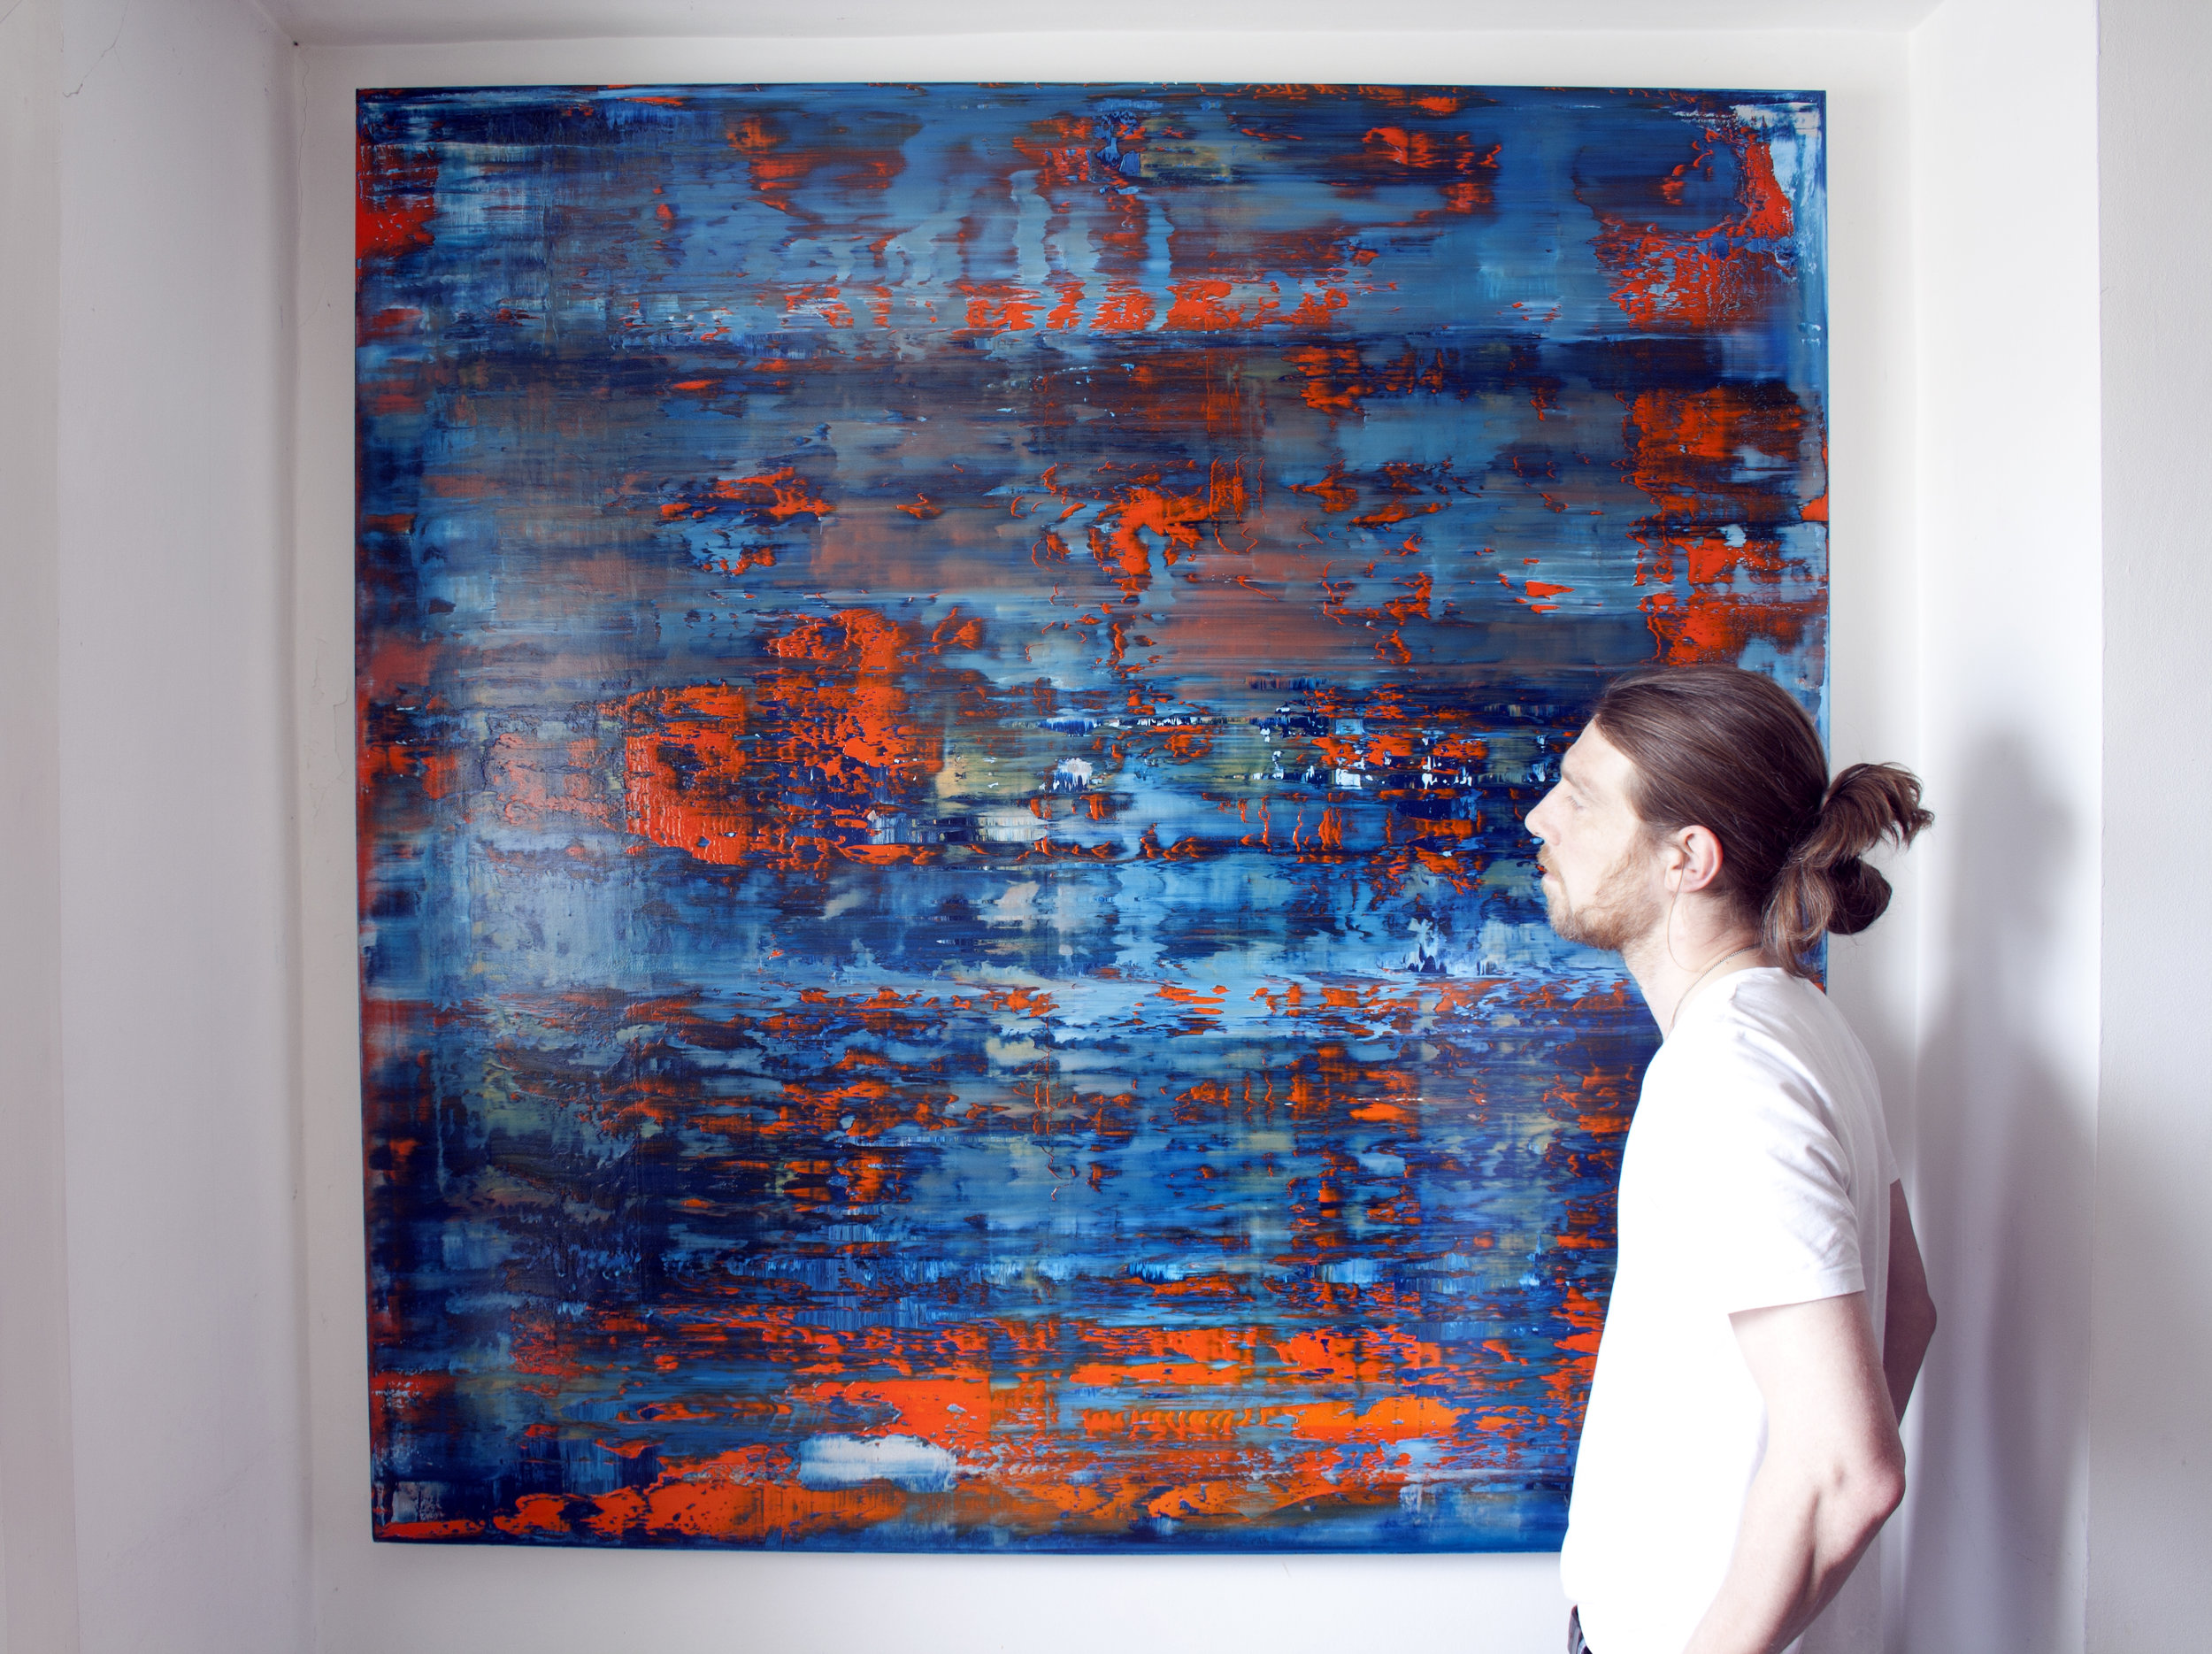 The Blue Hour   Oil on canvas 150cm x 150cm x 4.6cm © Anthony Wigglesworth - All Rights Reserved Inception Gallery, Paris